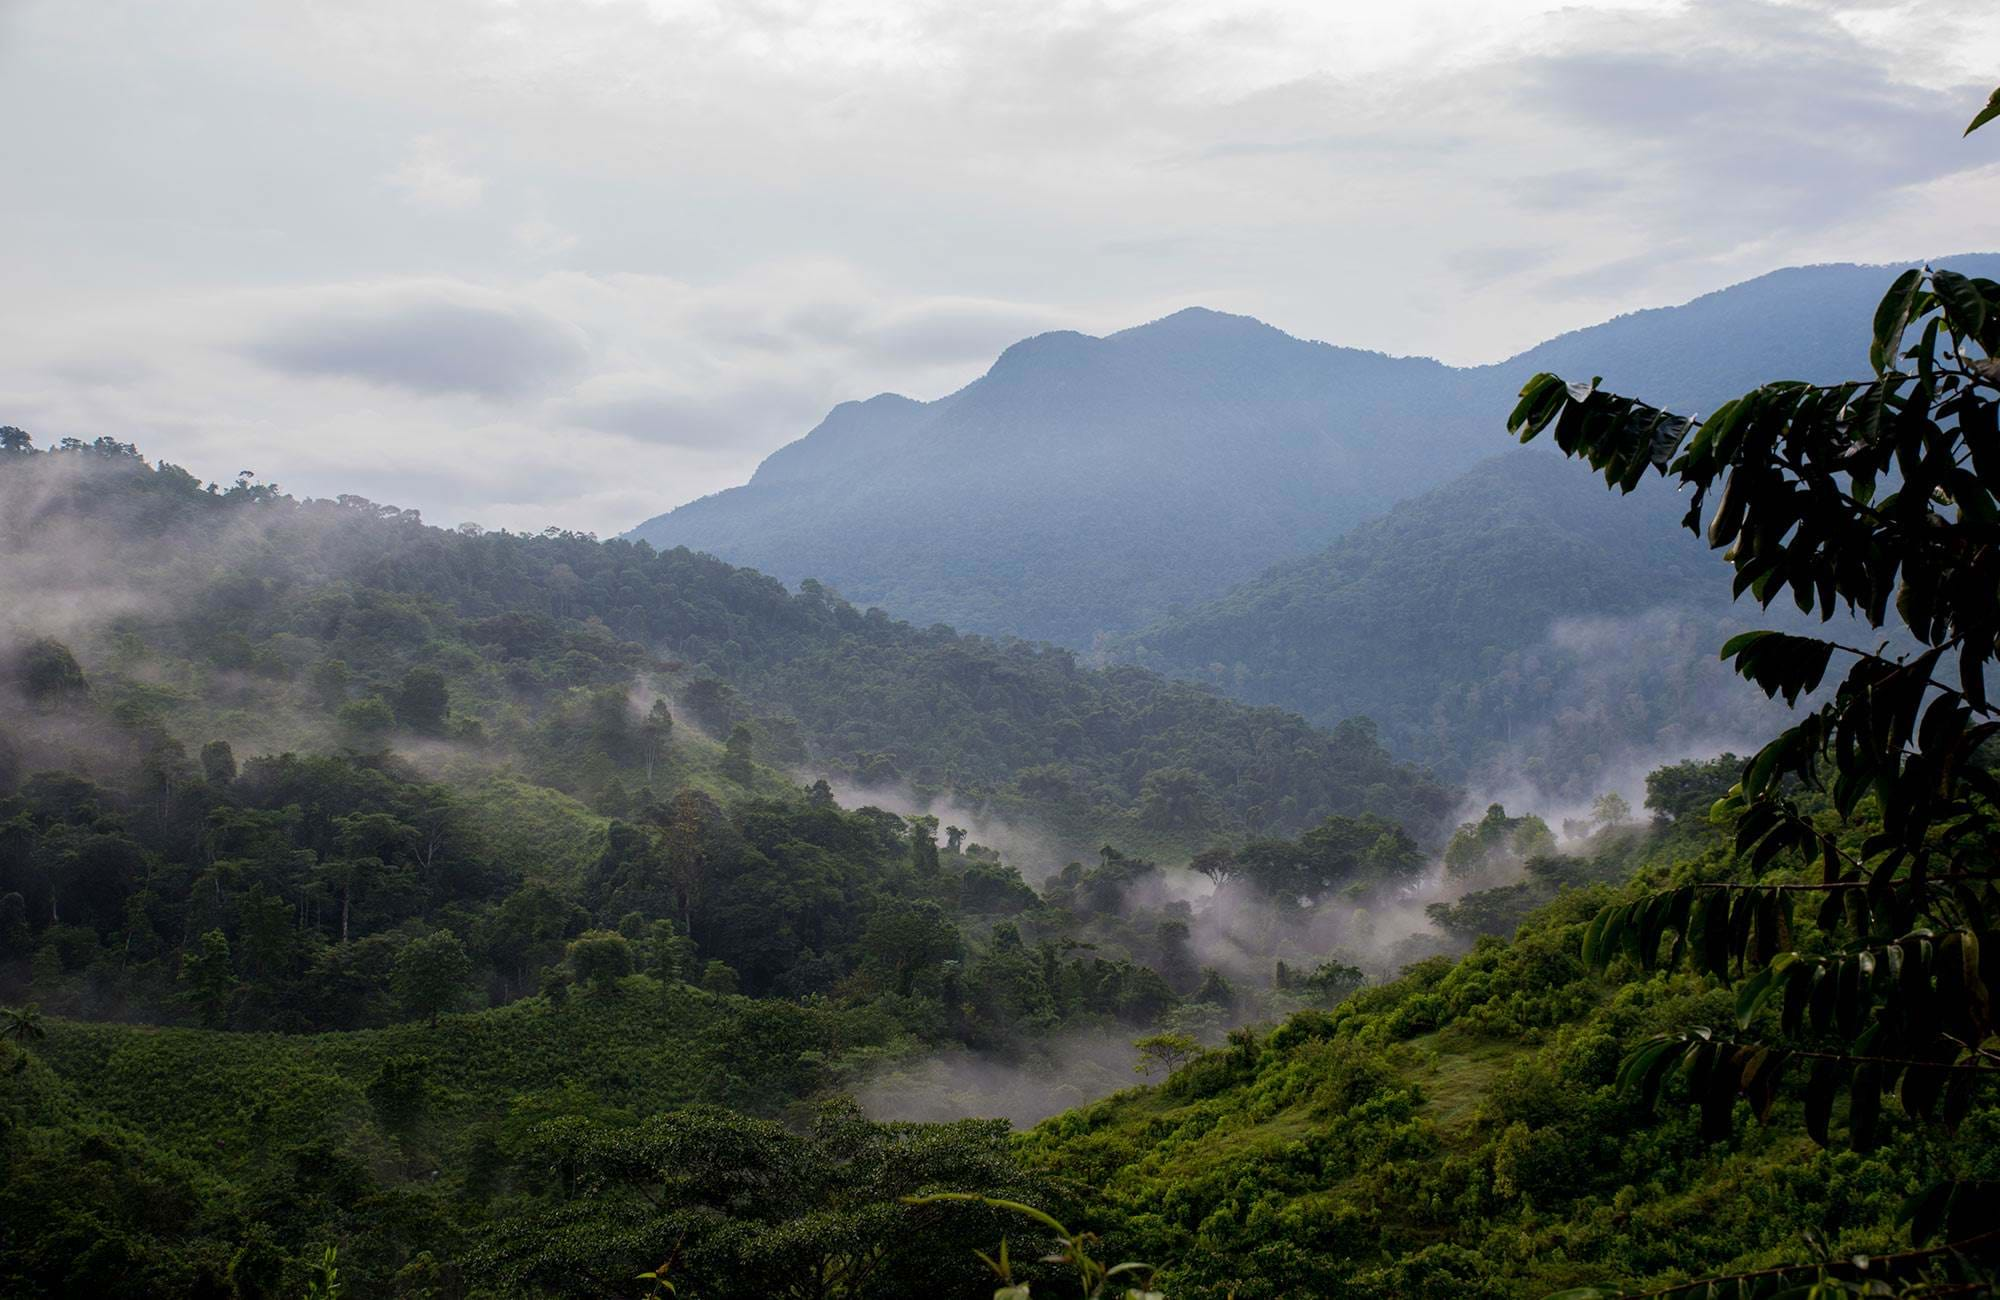 south-america-colombia-lost-city-trek-lookout-jungle